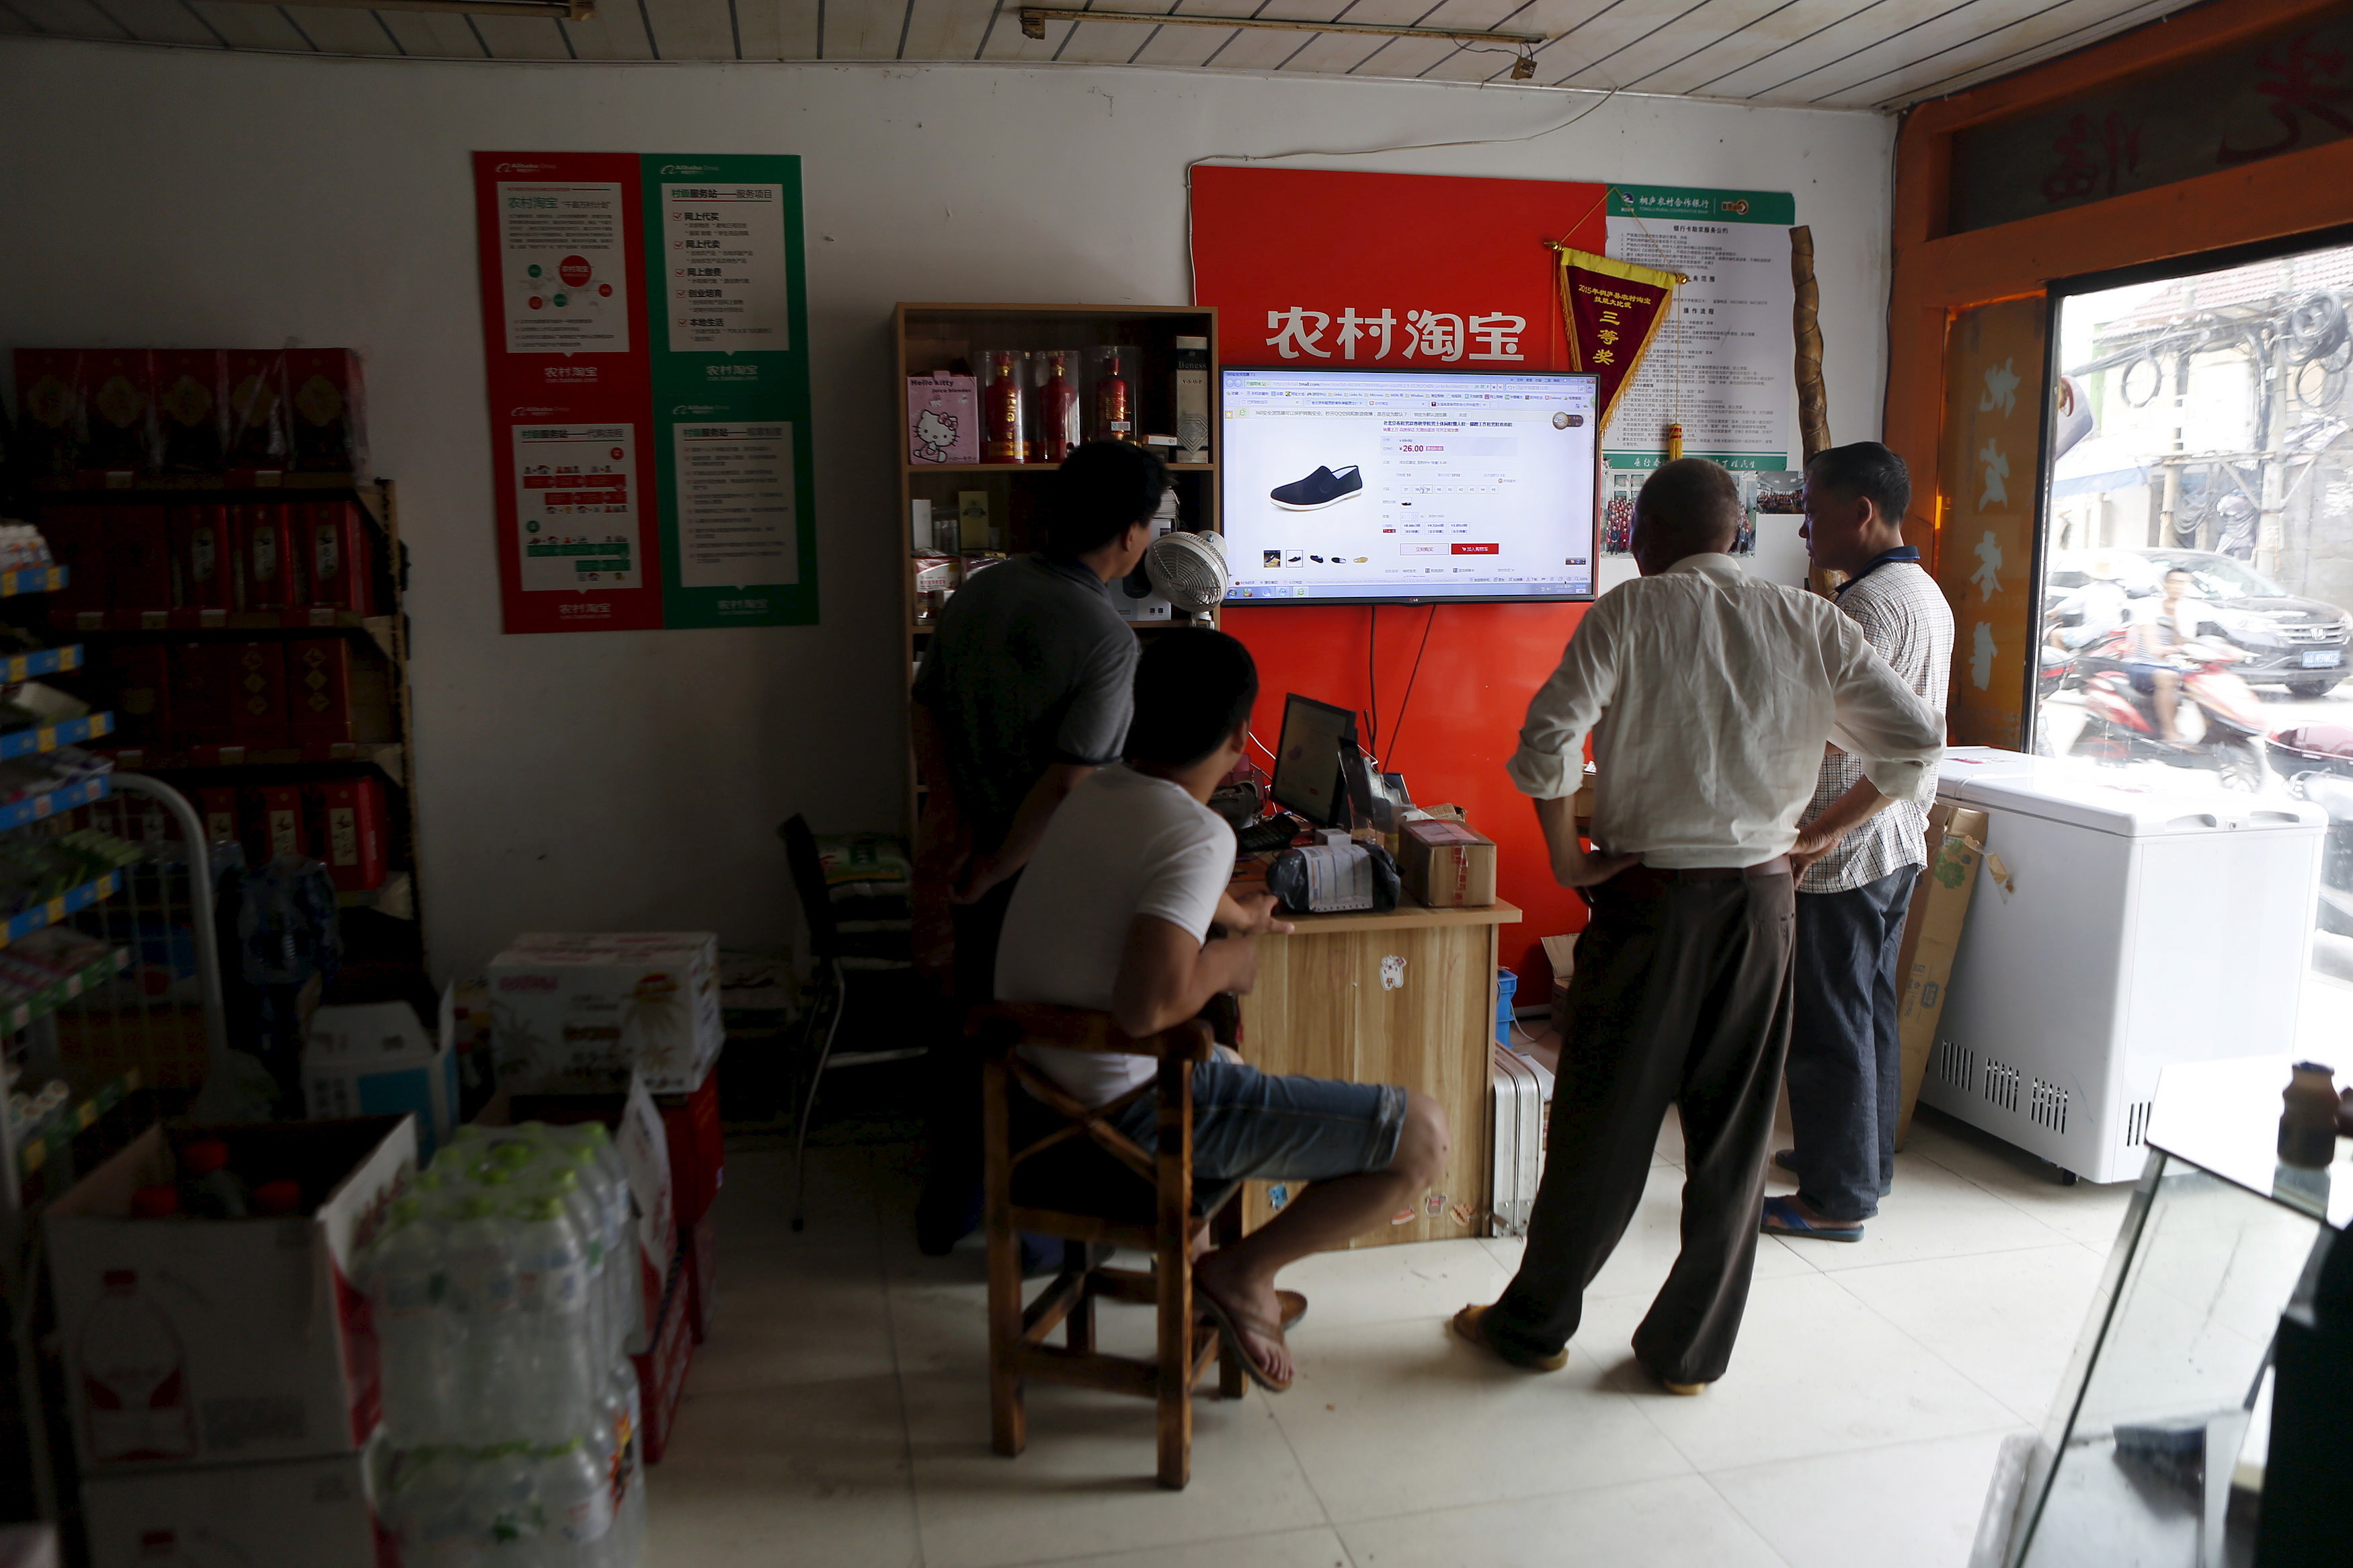 Villagers look at a screen displaying a website of Alibaba's Taobao at a rural service centre in Yuzhao Village, Tonglu, Zhejiang province, China, July 20, 2015. E-commerce growth in the countryside now outpaces that in major cities, though fewer than one tenth of online purchases made on Alibaba platforms were shipped to rural areas in the first quarter of this year. Alibaba estimates the potential market at 460 billion yuan ($74 billion) by next year. Picture taken July 20. REUTERS/Aly Song - RTX1MHA8